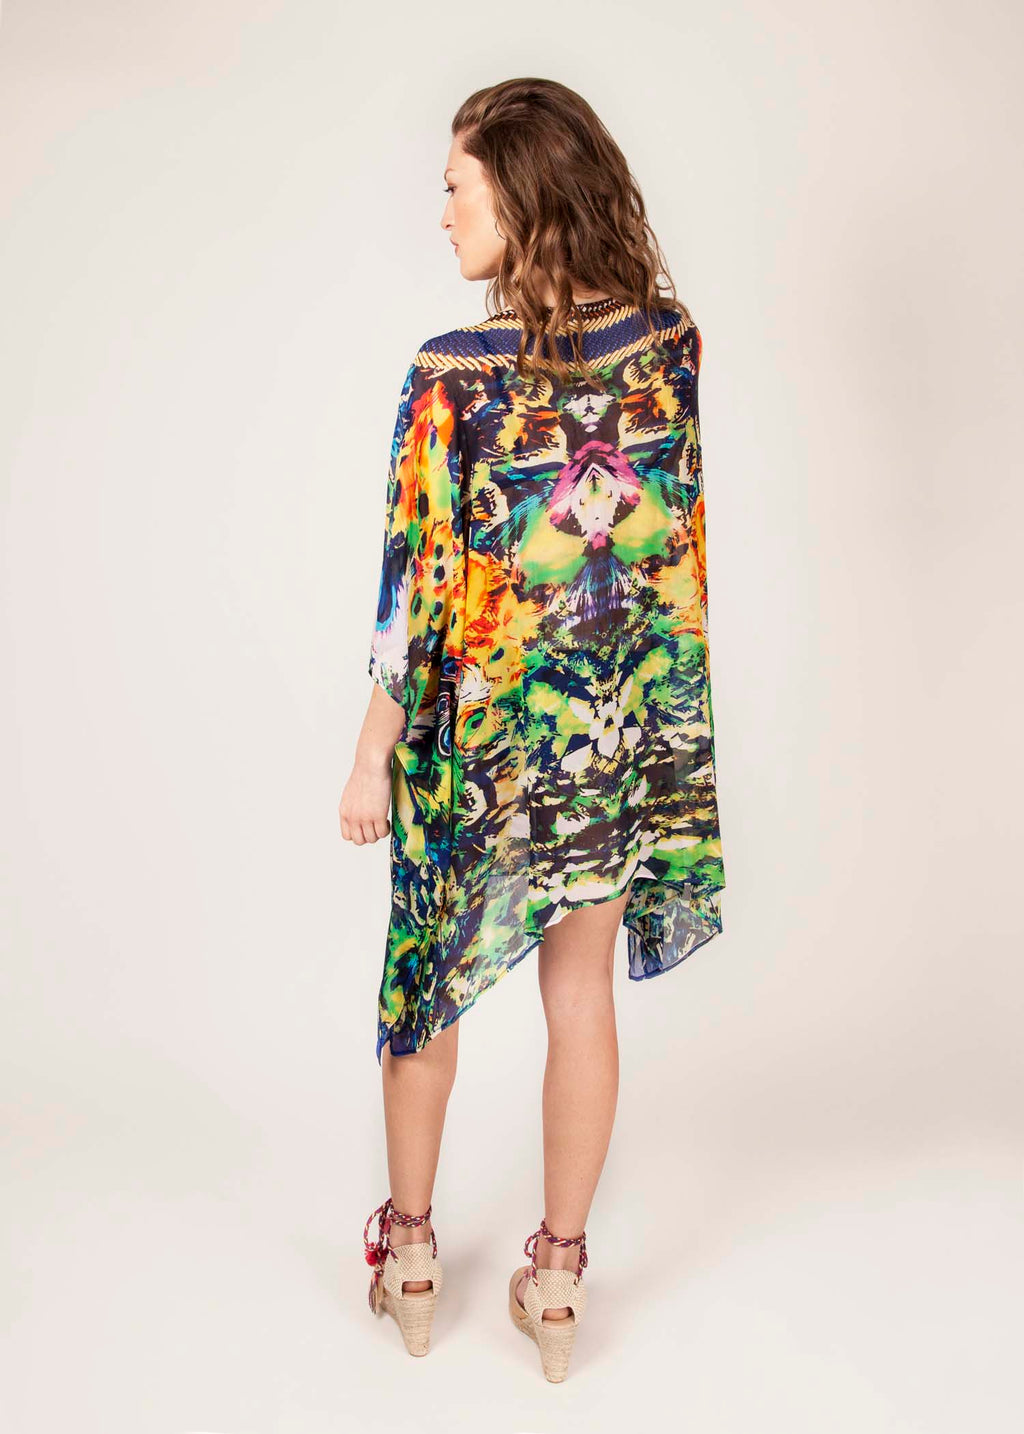 BIRD OF PARADISE  - 100% Silk Georgette - Luxury Kaftan - Cobalt